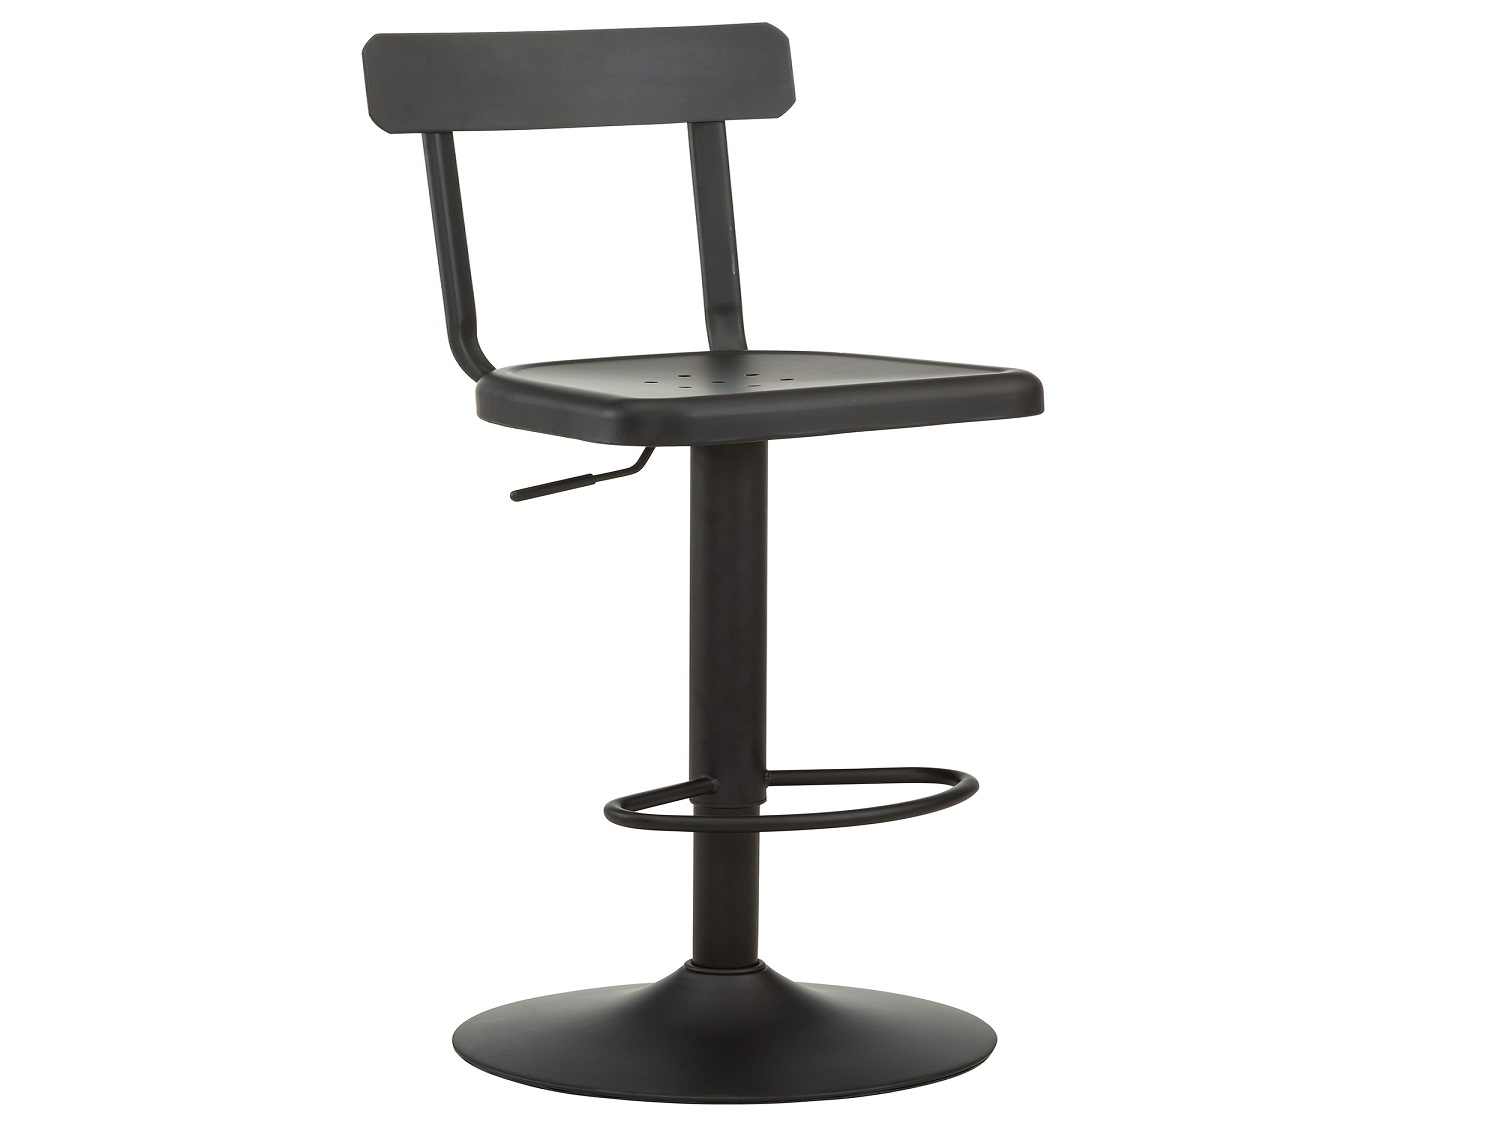 HAINES-ADJUSTABLE STOOL-BLACK, 841173021108, Bar Stools by Midha Furniture to Brampton, Mississauga, Etobicoke, Toronto, Scraborough, Caledon, Oakville, Markham, Ajax, Pickering, Oshawa, Richmondhill, Kitchener, Hamilton and GTA area